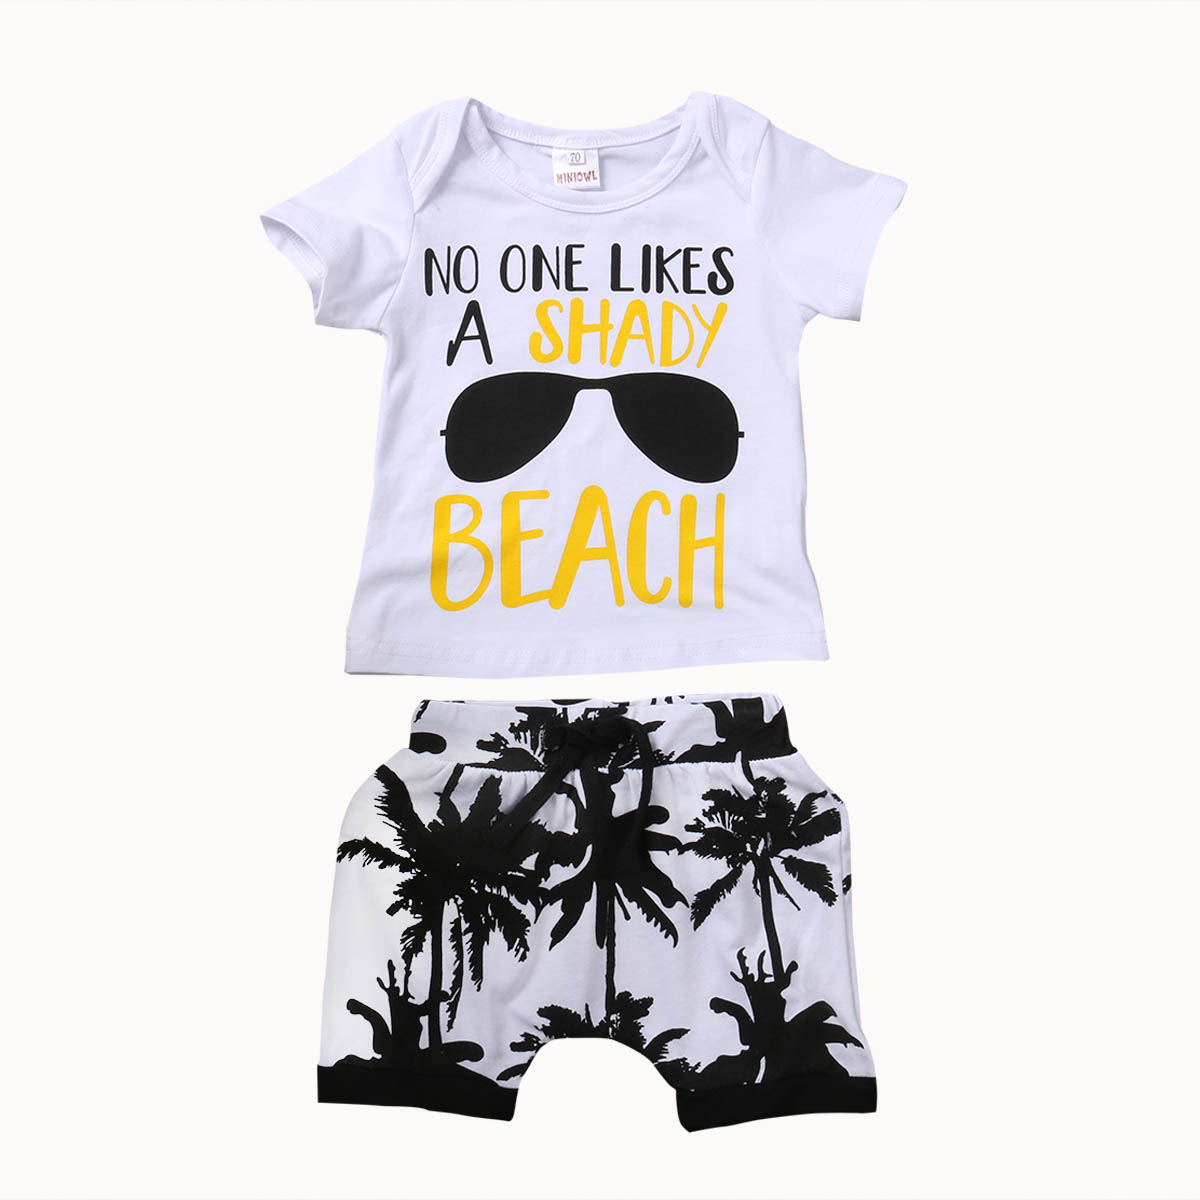 2PCS Toddler Kids Baby Boy Girl Clothes Set 2017 Summer Short Sleeve Cotton T-shirt Top+Shorts Hot Pant Outfit Children Clothing цена 2017